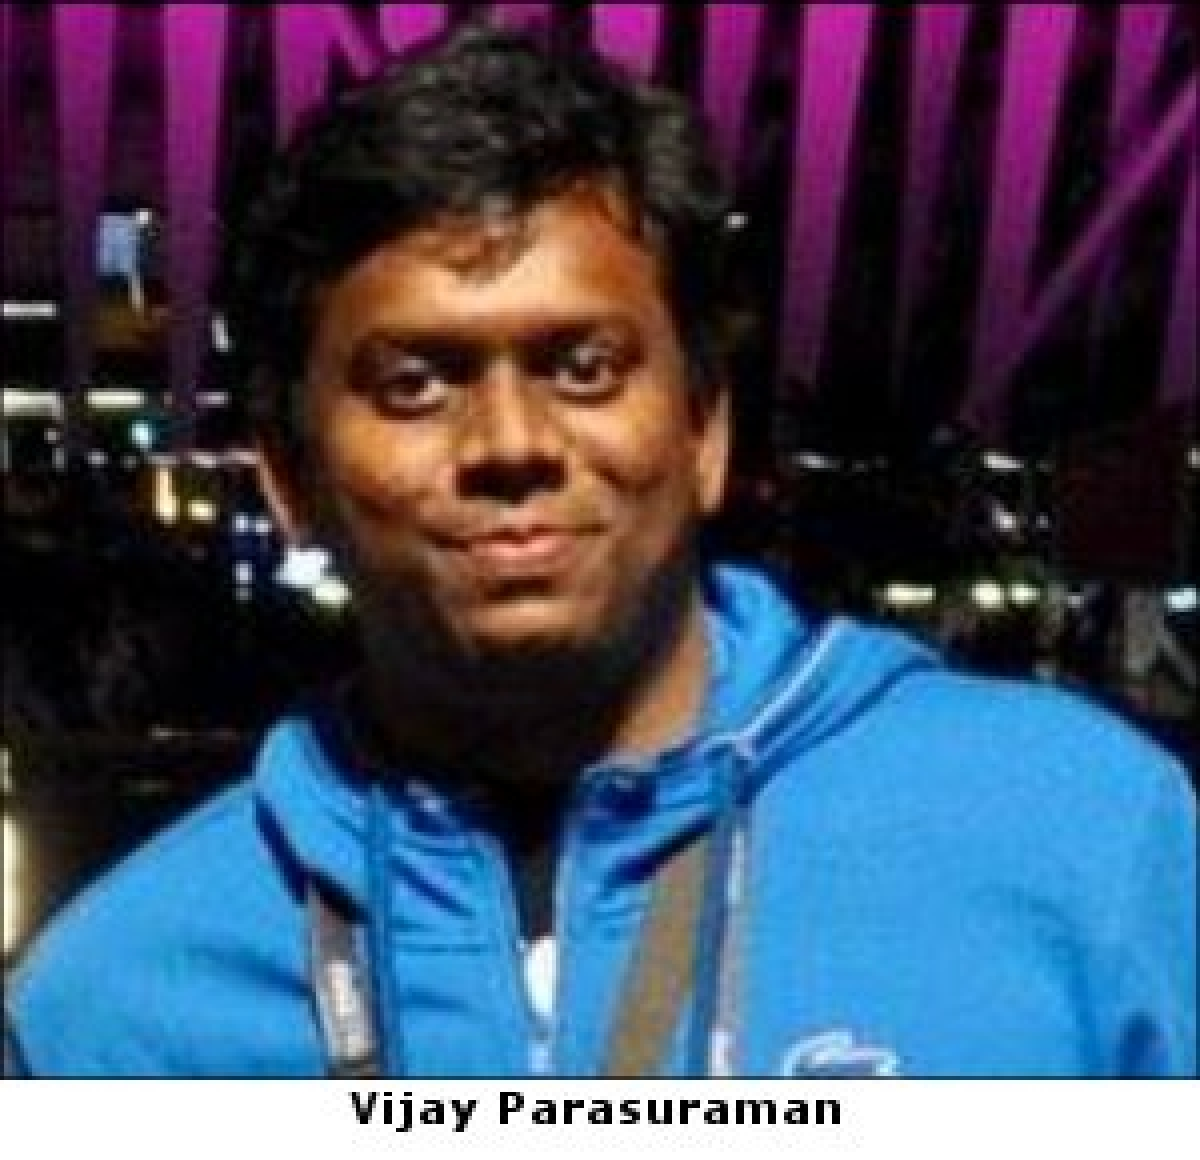 Vijay Parasuraman is the new vice-president marketing at Coca-Cola